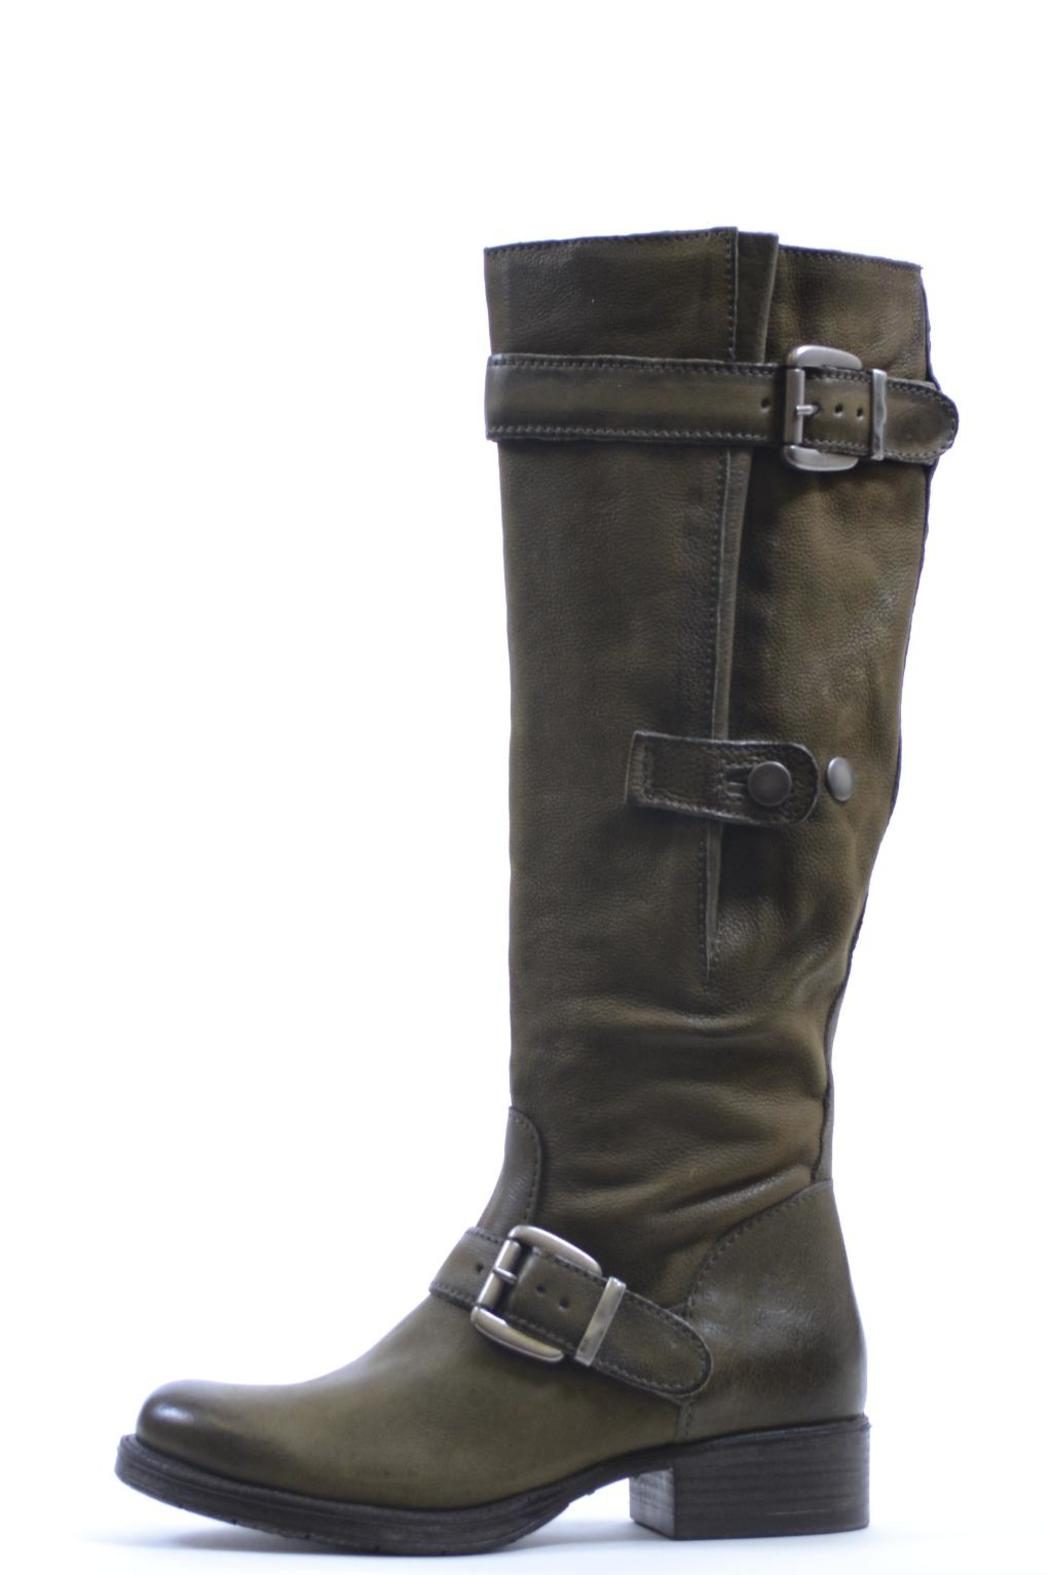 MJUS Wide Calf Boot from Canada by